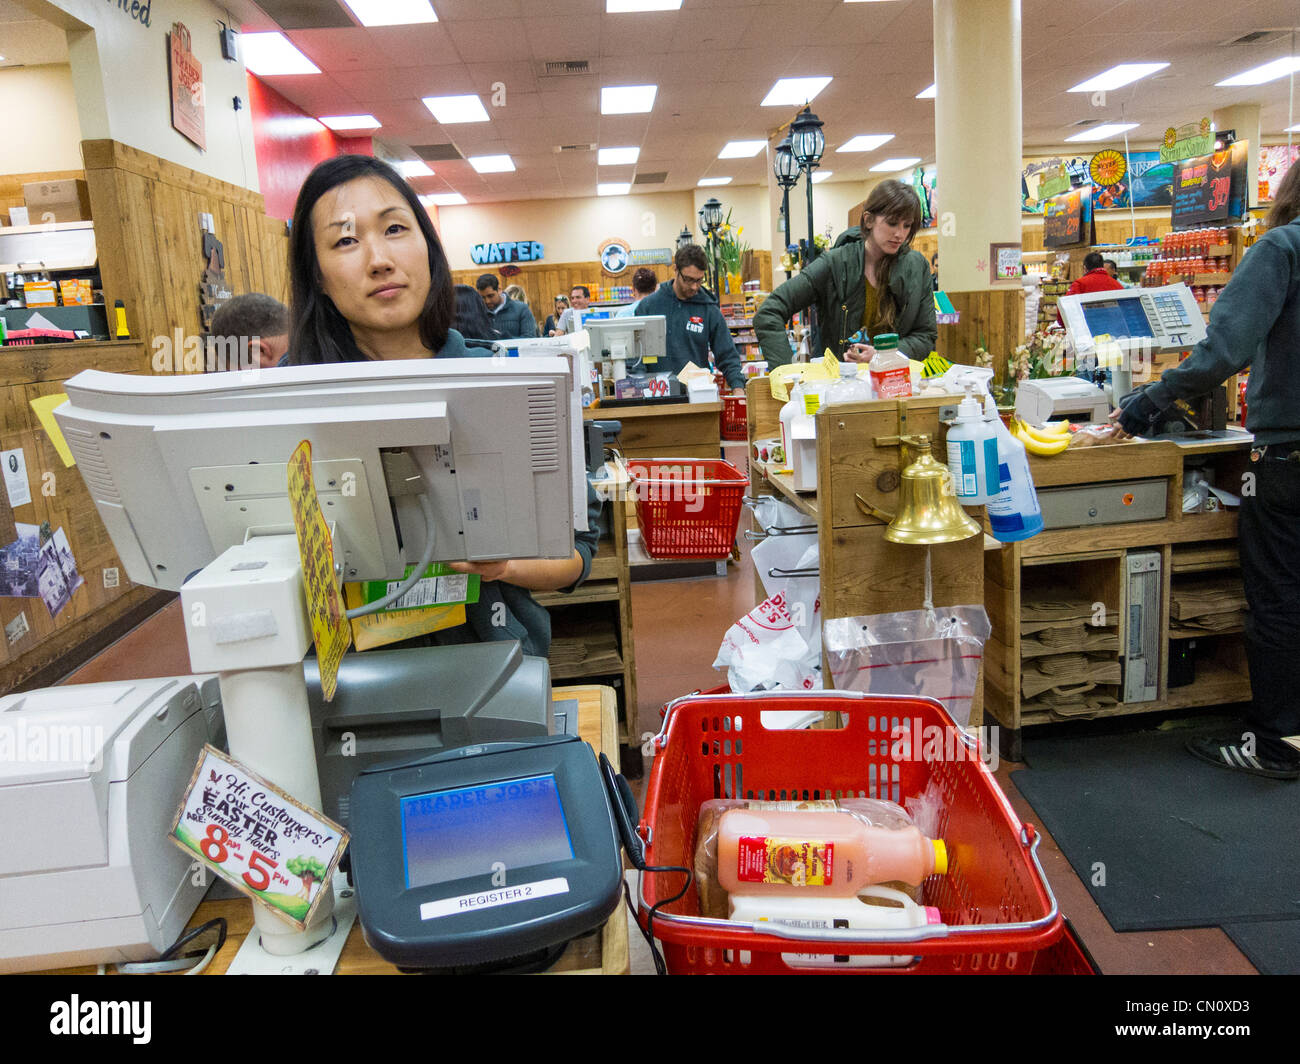 checkout clerk at Trader Joe's, Philadelphia, USA - Stock Image